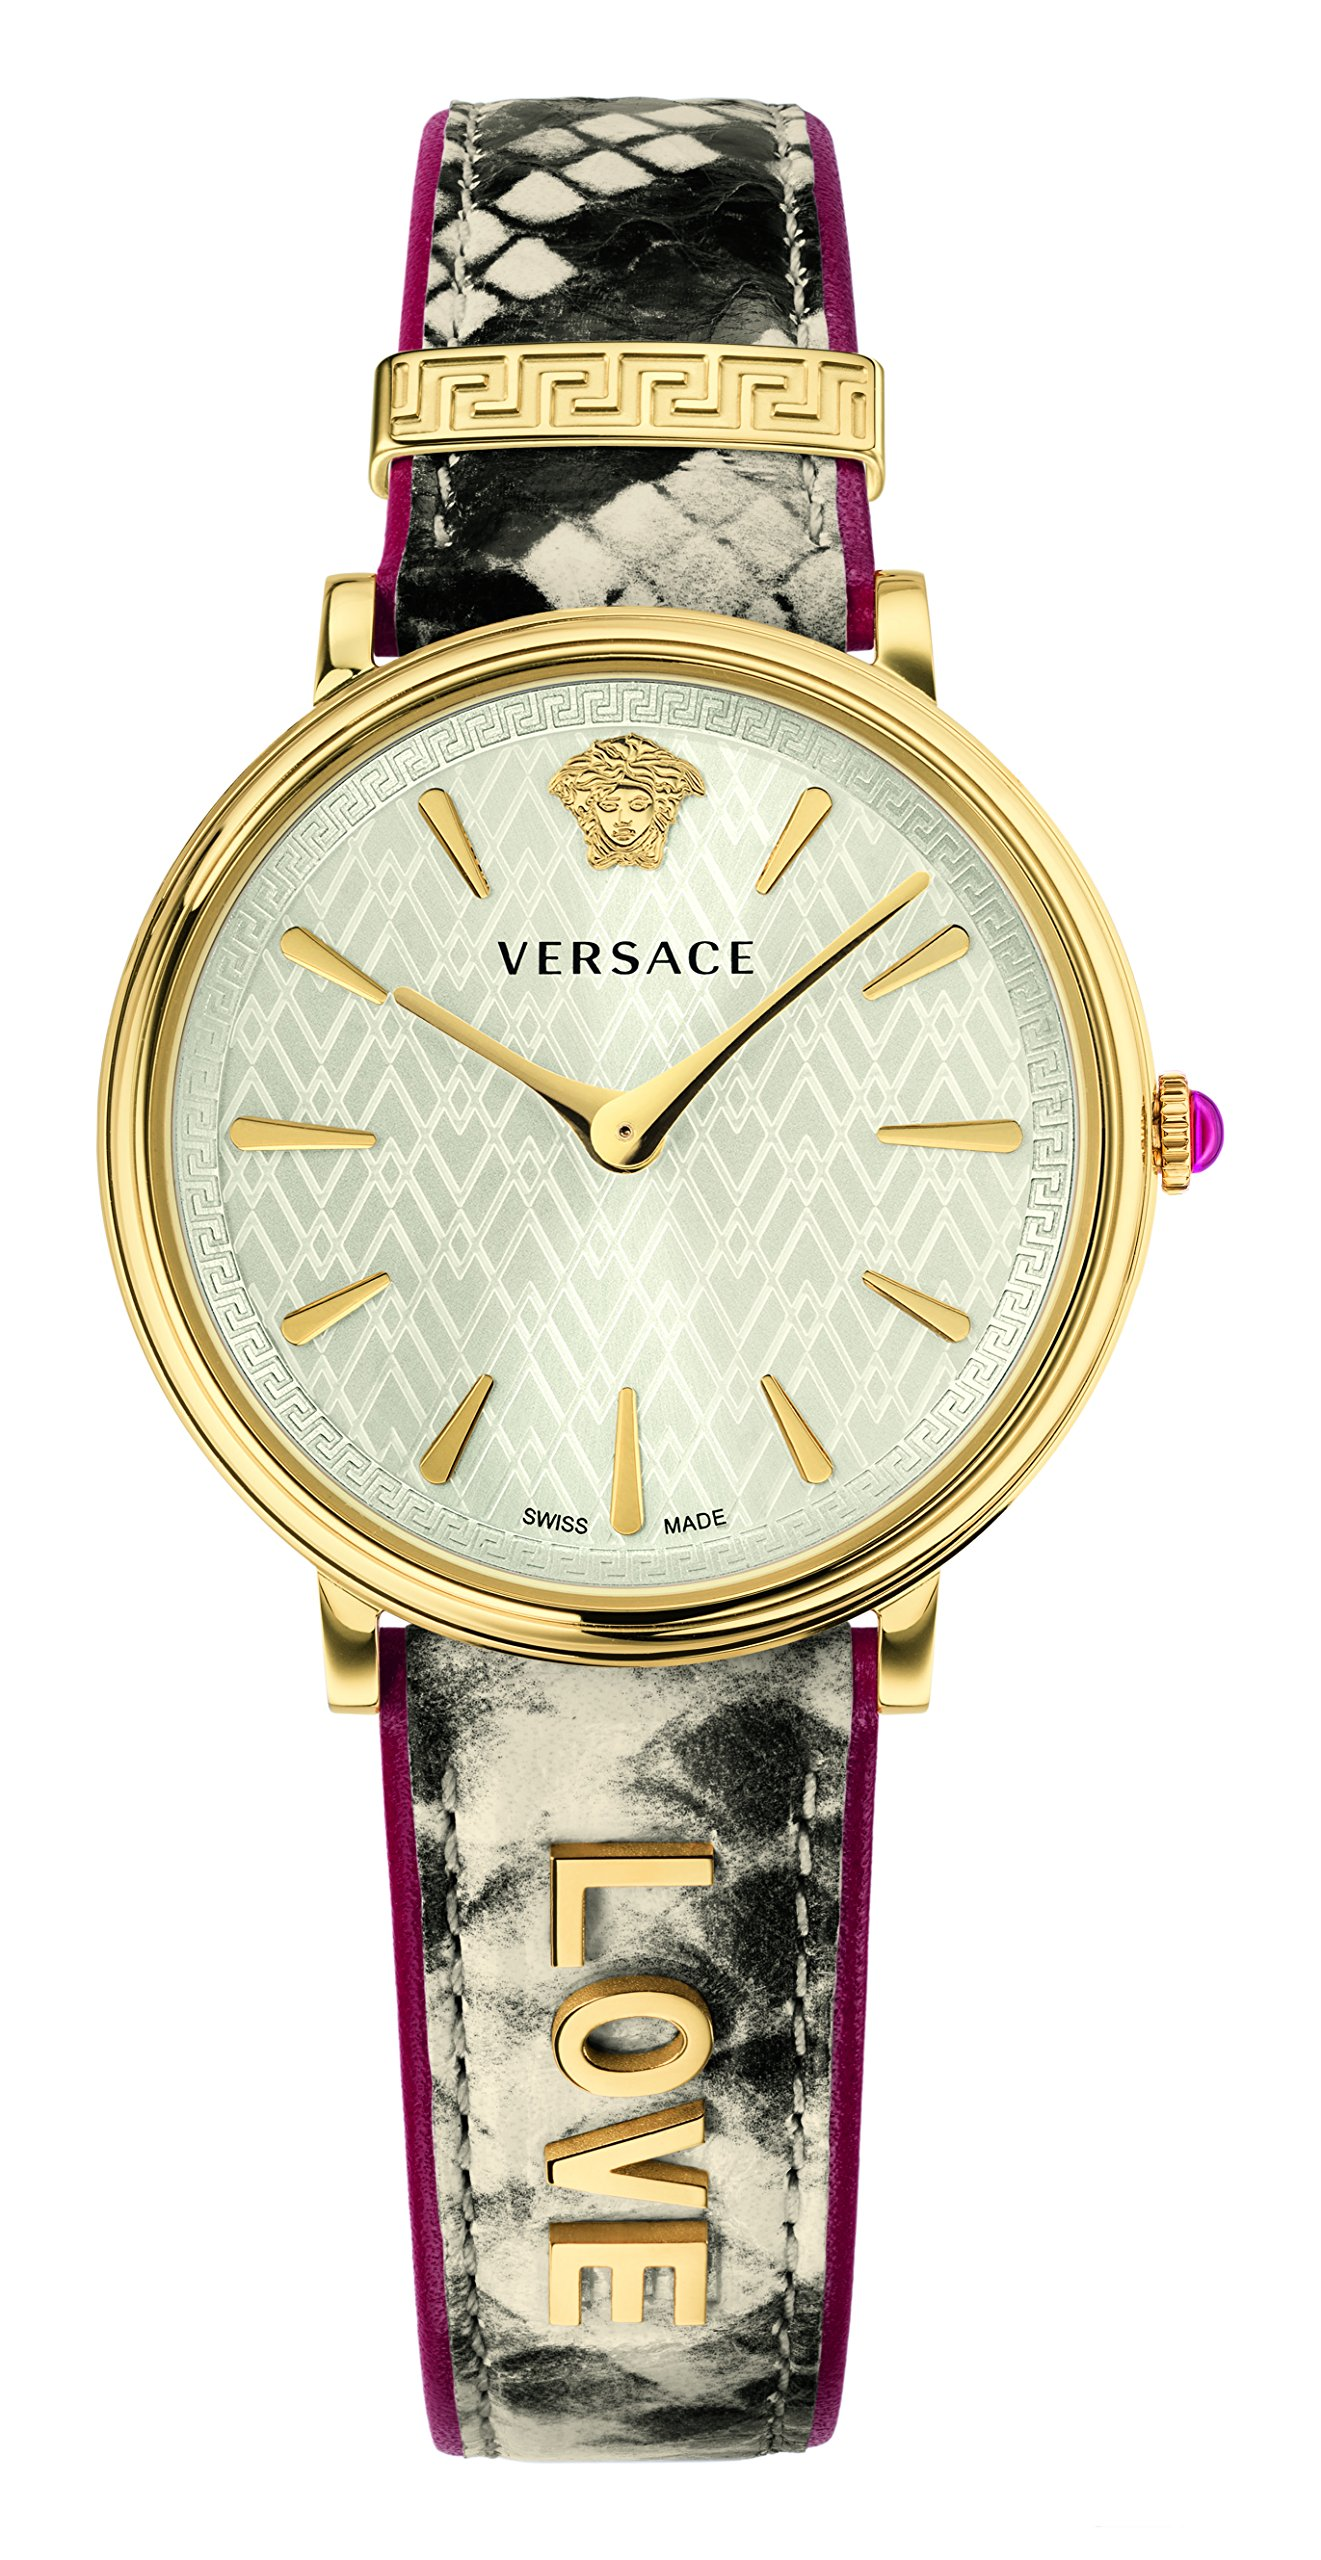 Versace Women's 'MANIFESTO EDITION' Swiss Quartz Gold-Tone and Leather Casual Watch, Color:Beige (Model: VBP080017)